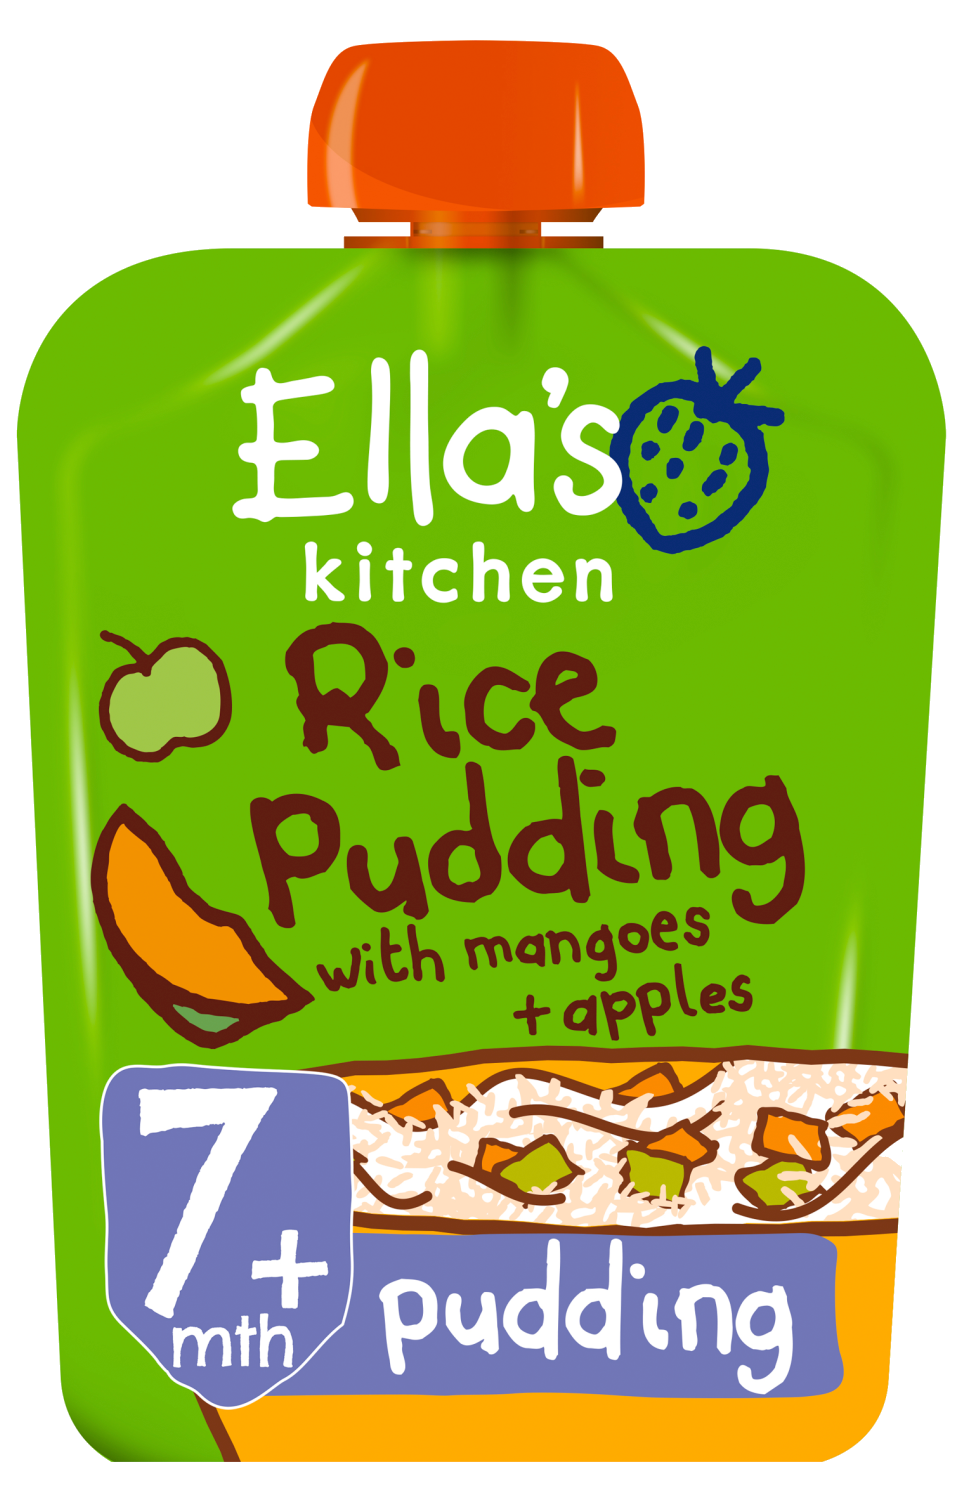 Ellas kitchen rice pudding mangoes apples pouch 7 months front of pack O